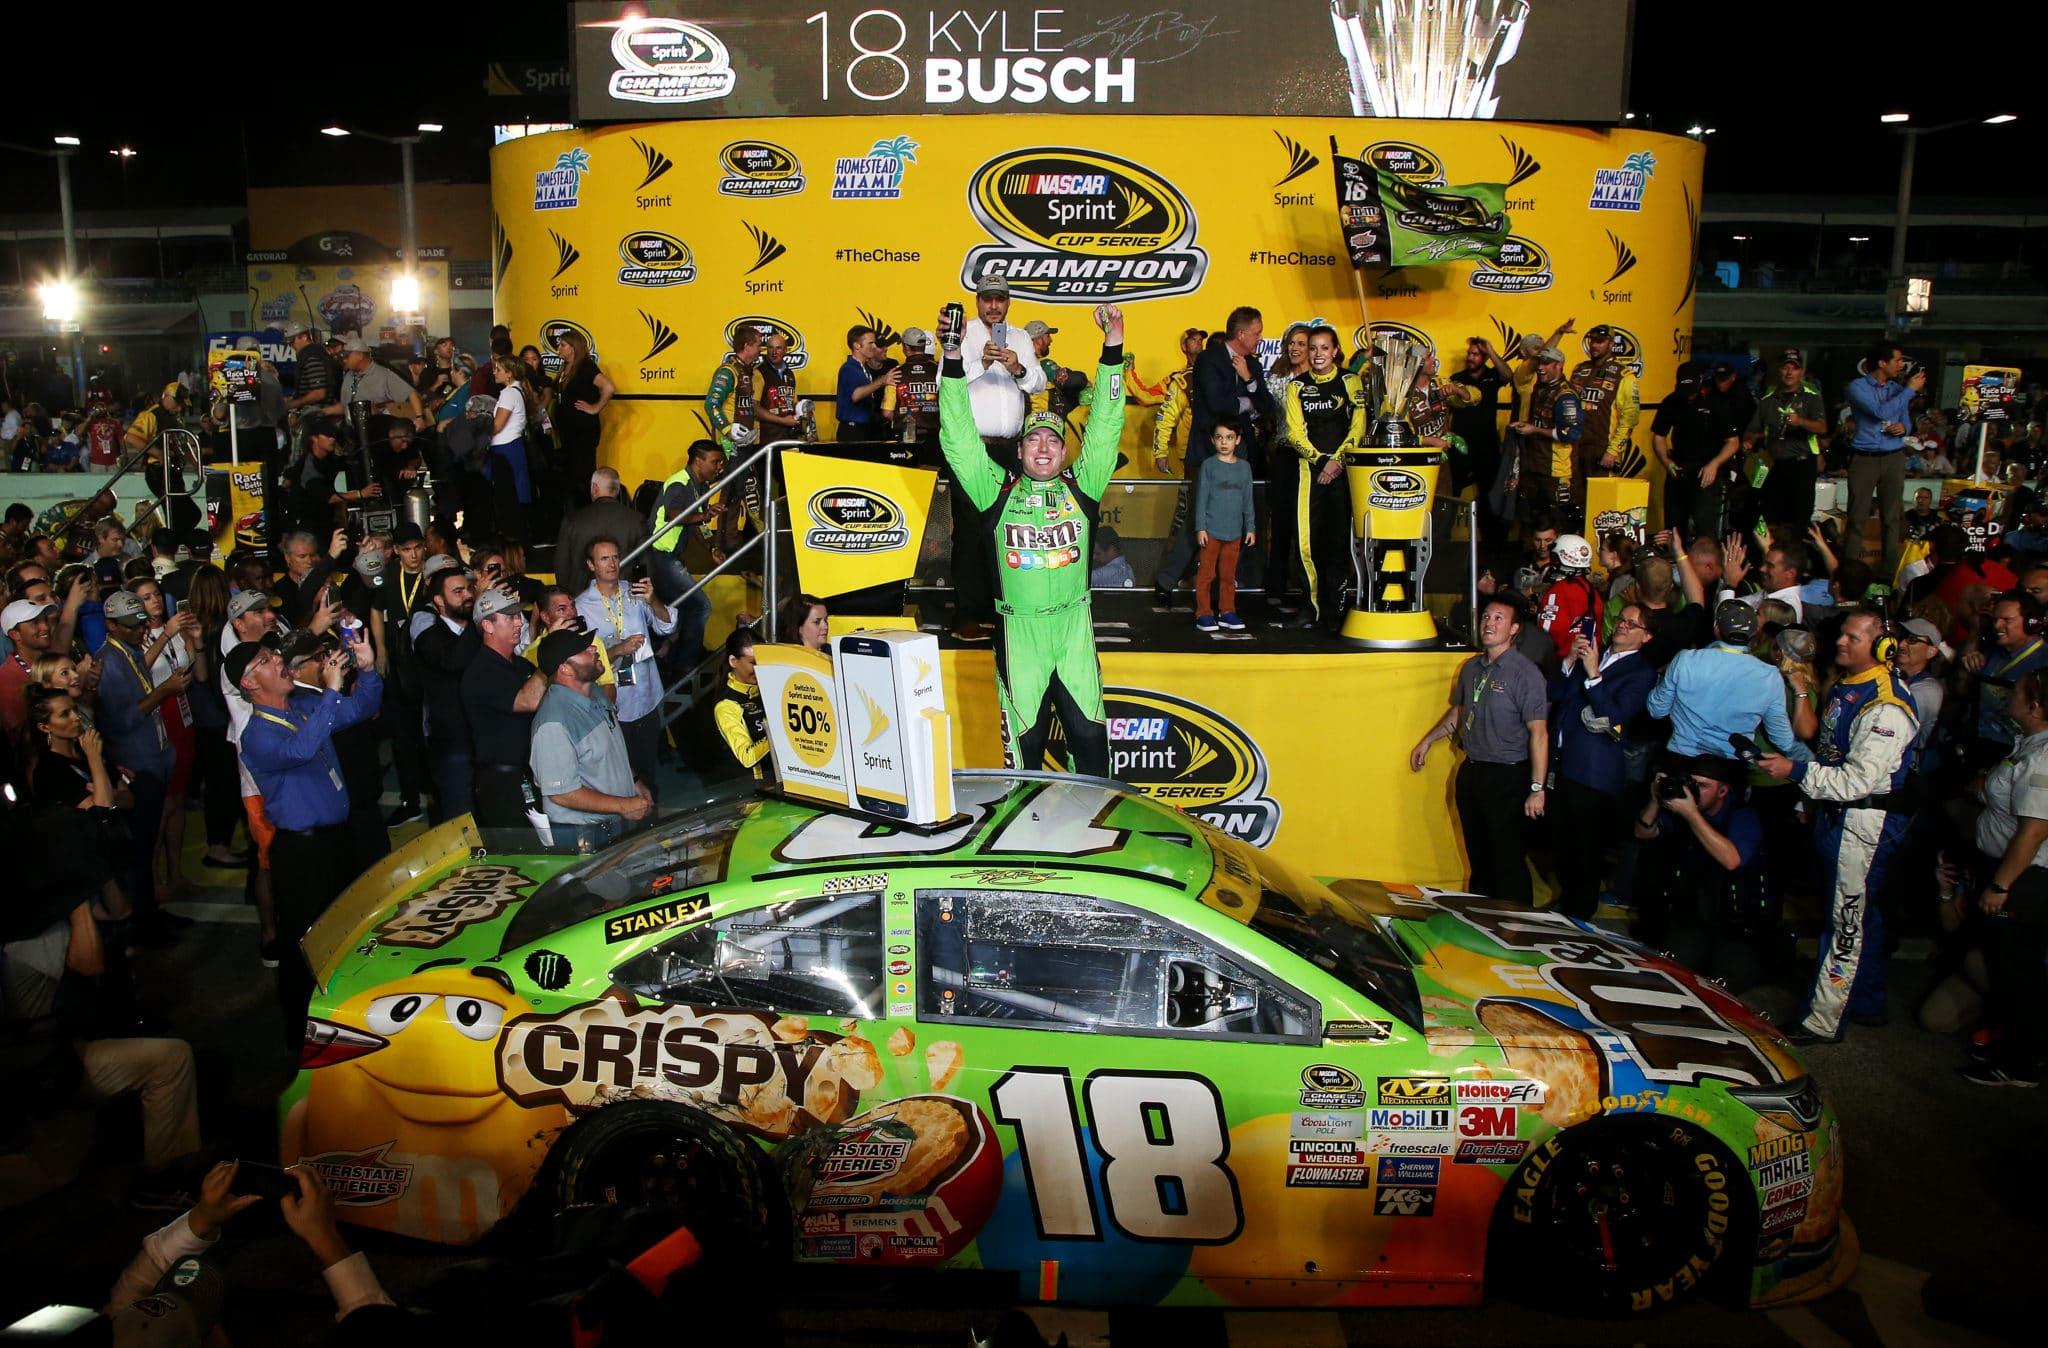 2015 Homestead Miami Speedway NSCS Kyle Busch Victory Lane Championship credit NASCAR via Getty Images